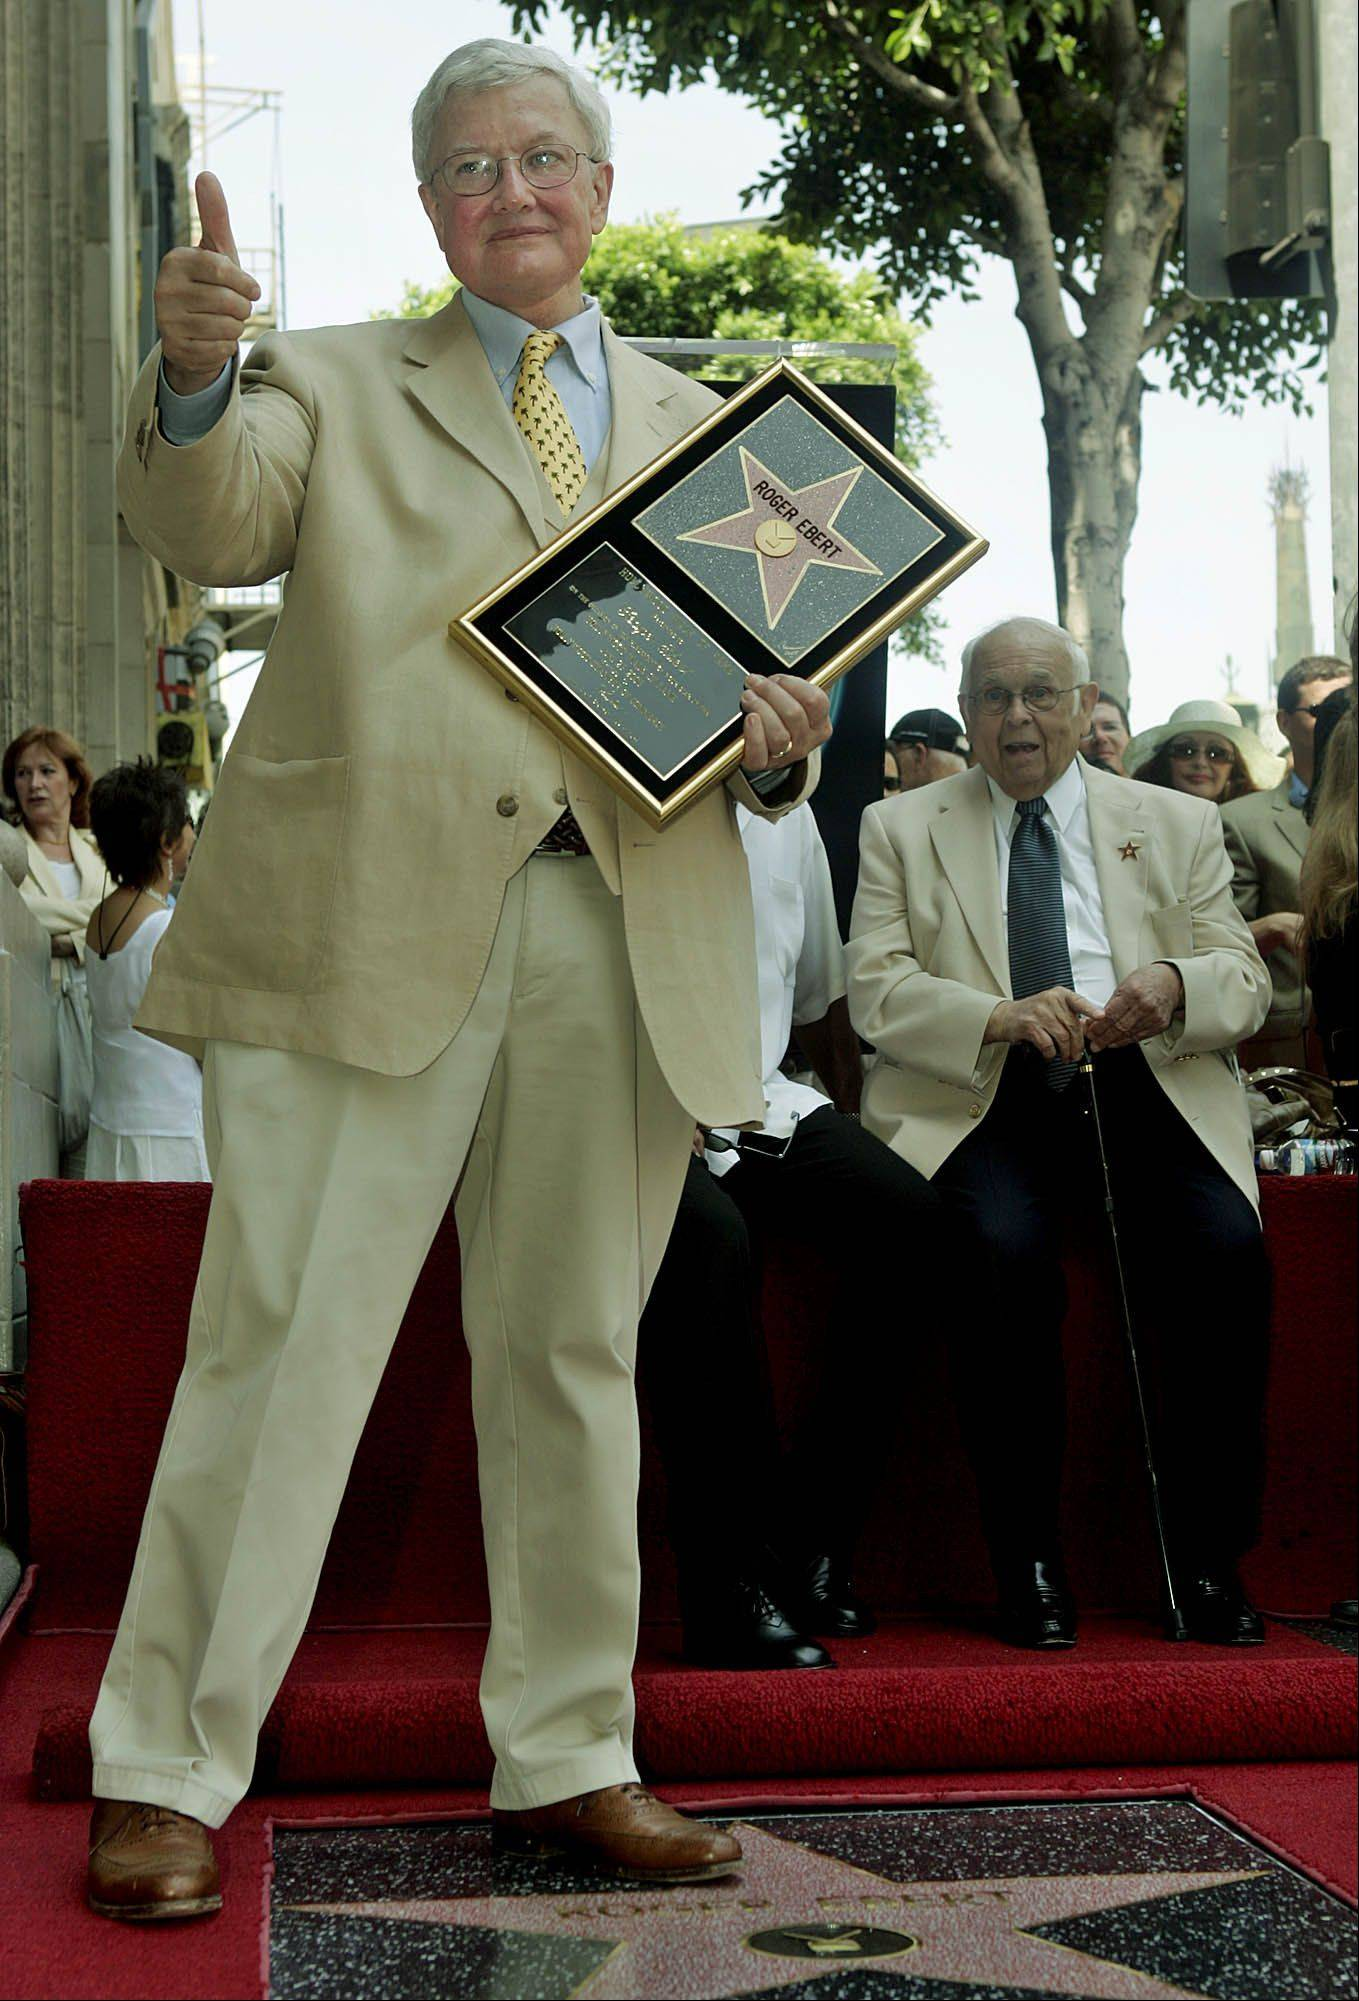 In 2005, film critic Roger Ebert was honored with a star on the Hollywood Walk of Fame.